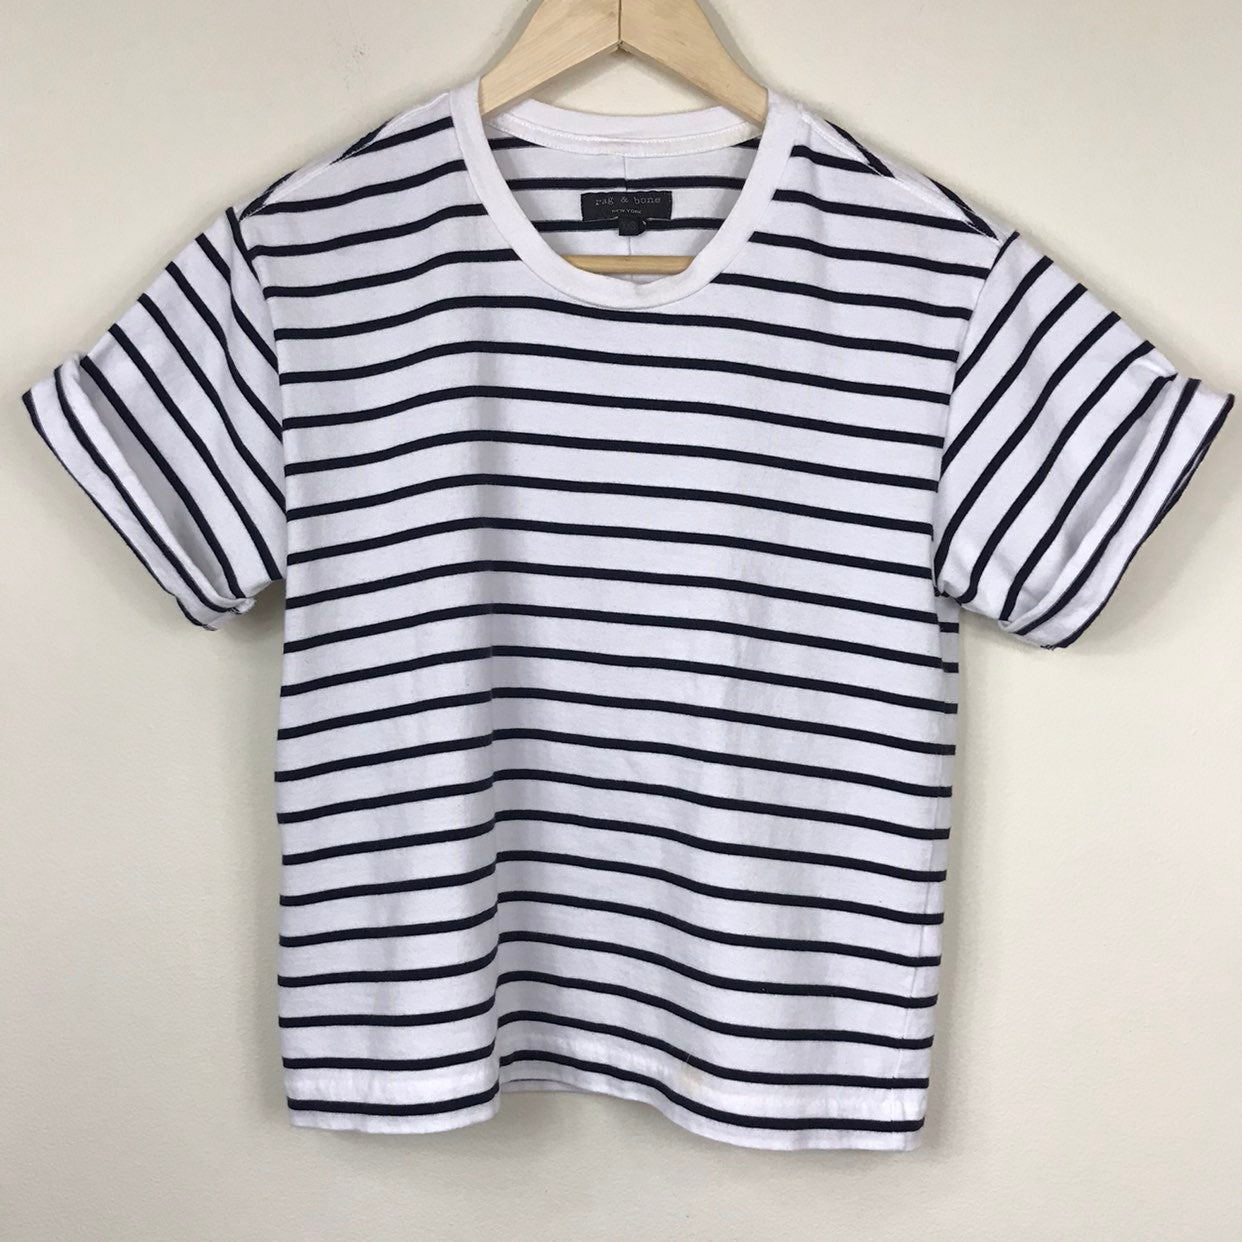 Rag&bone Striped tee